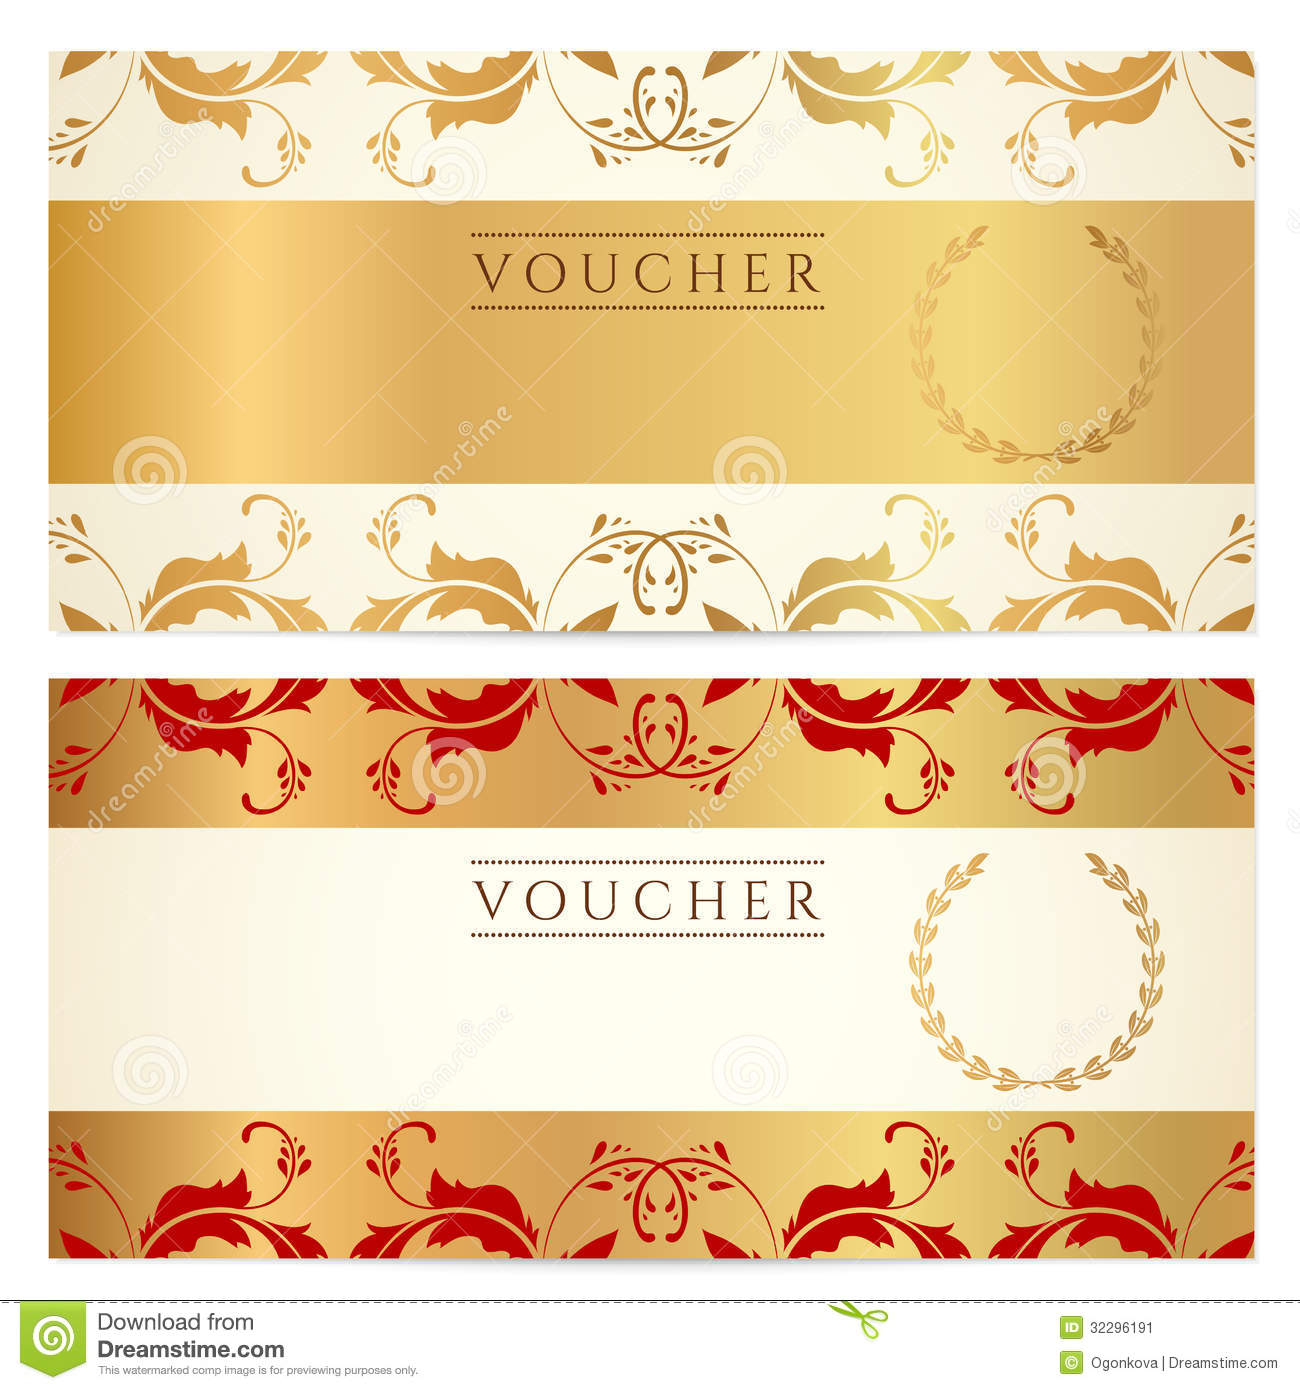 Gift Vouchers Templates stockvectorgiftcertificatetemplate – Christmas Gift Card Templates Free